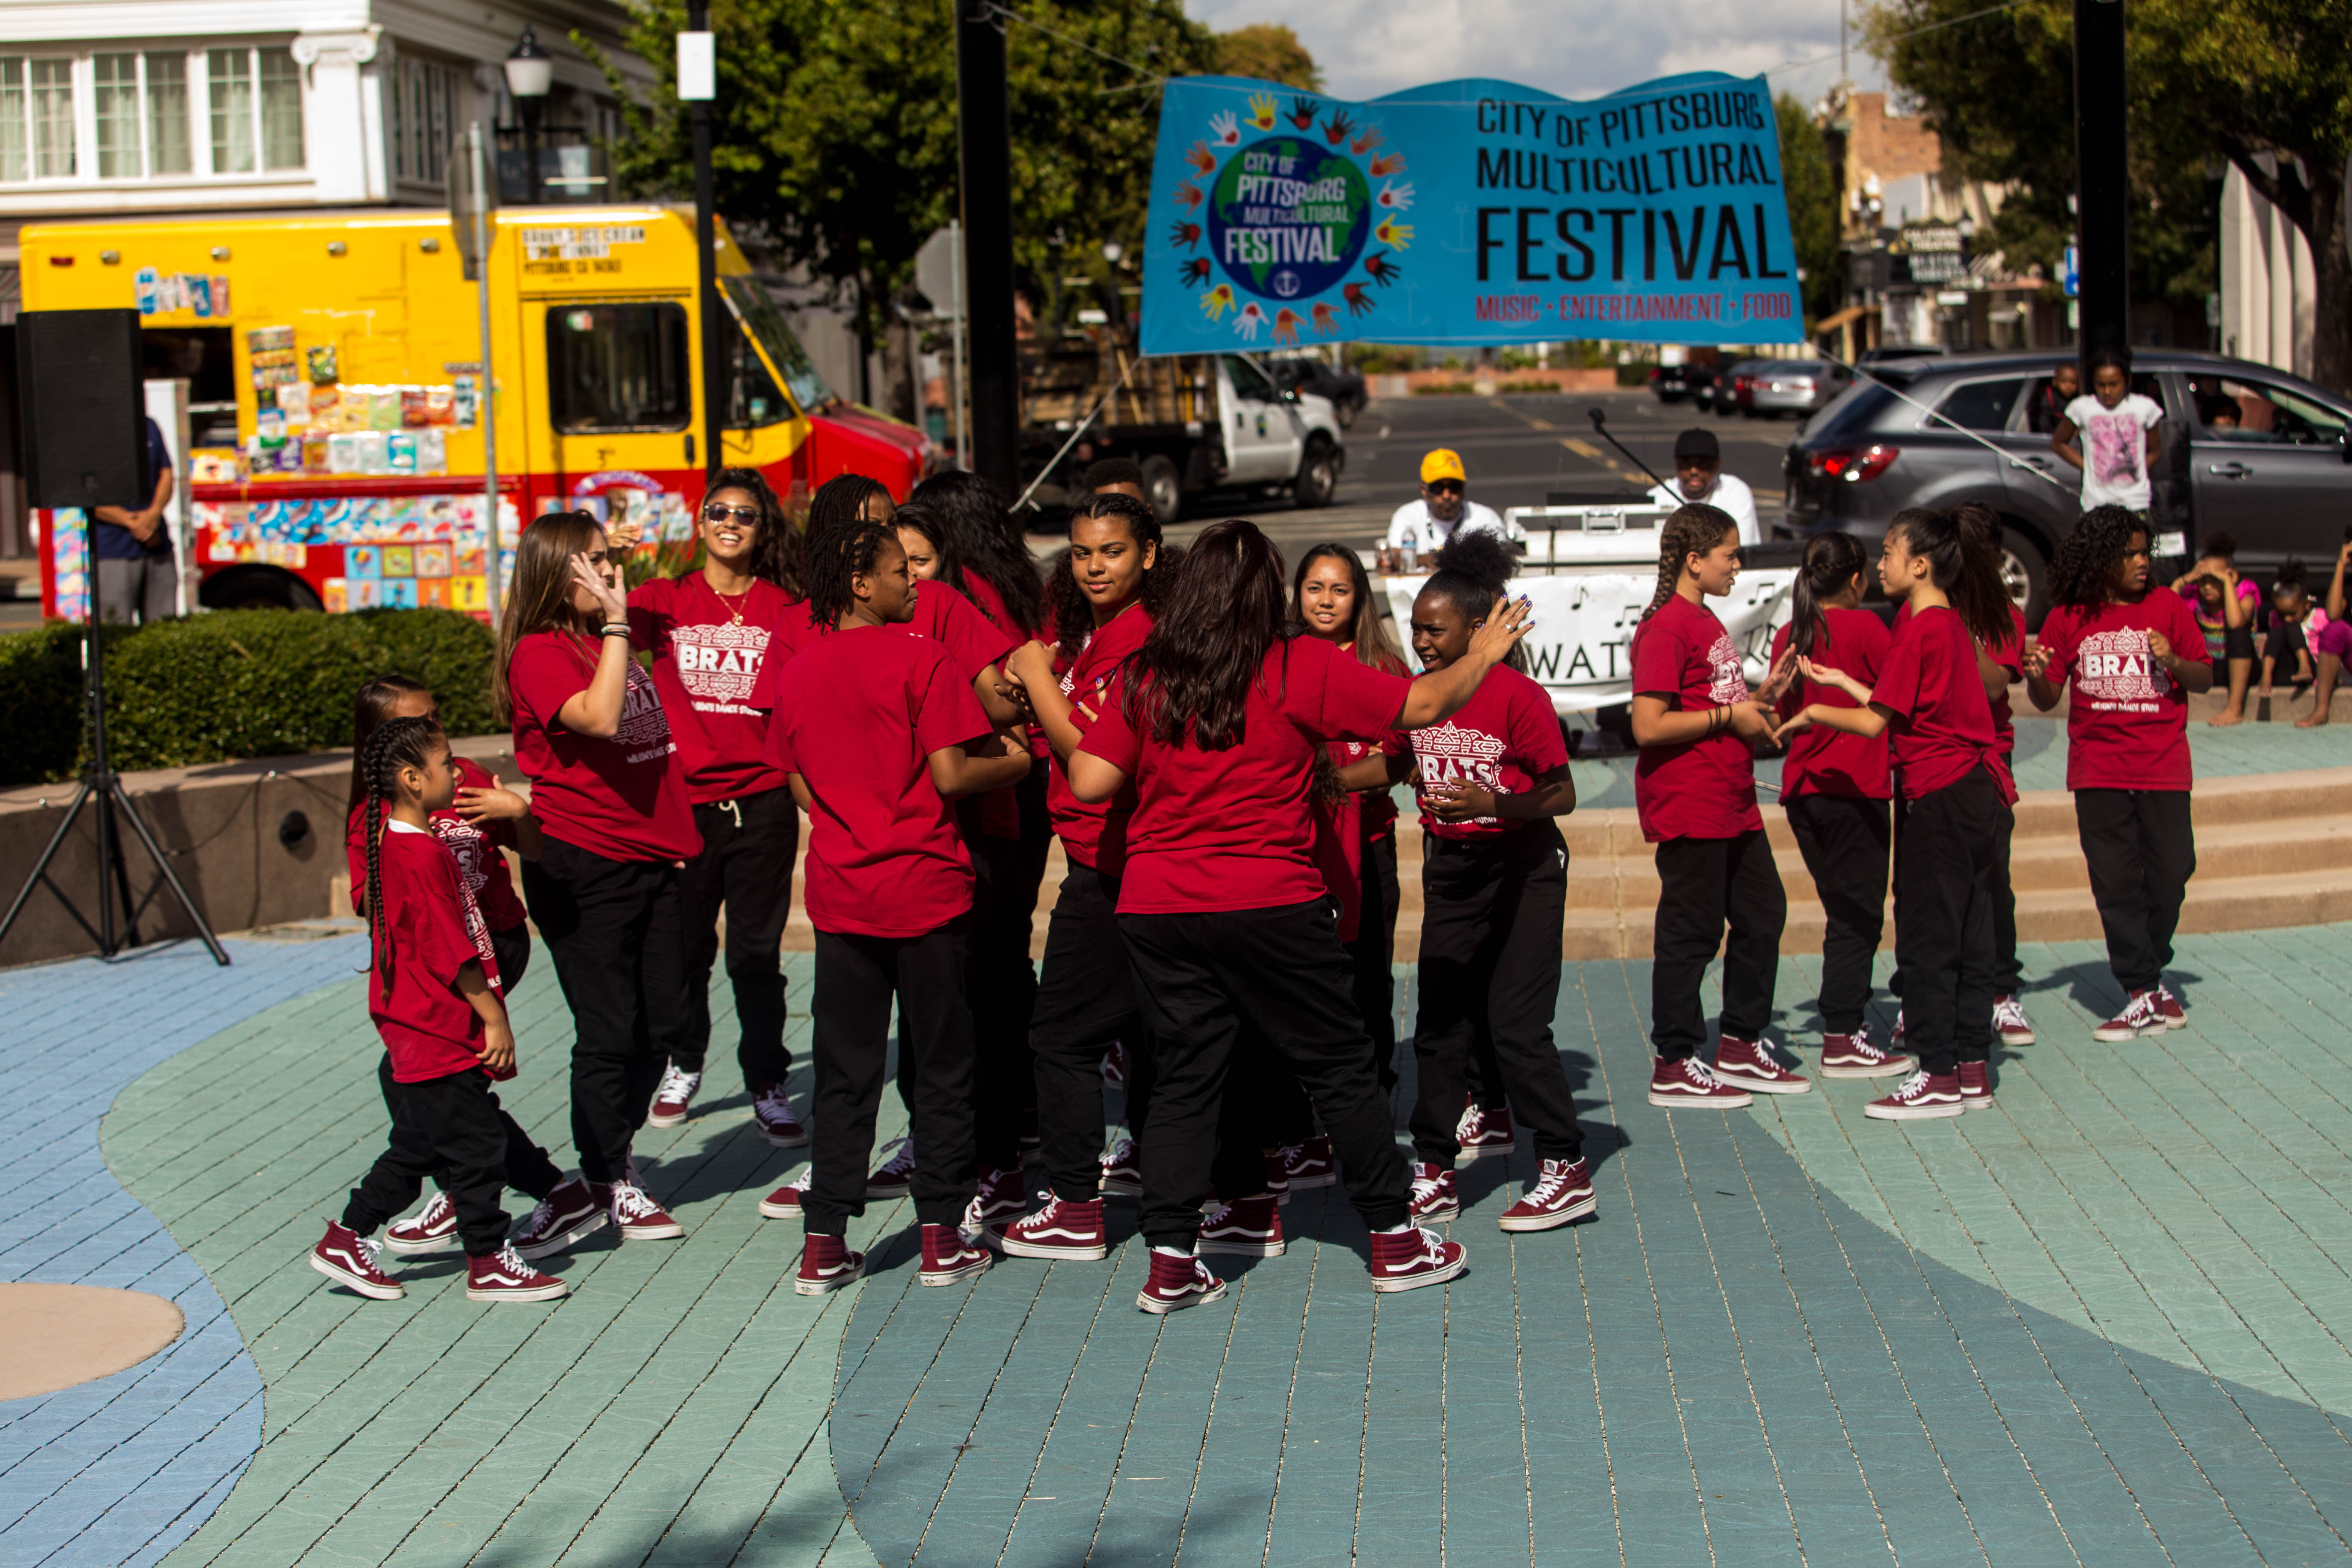 CITY_PITTSBURG_MULTICULTURAL_OCTOBER_2016 (370)